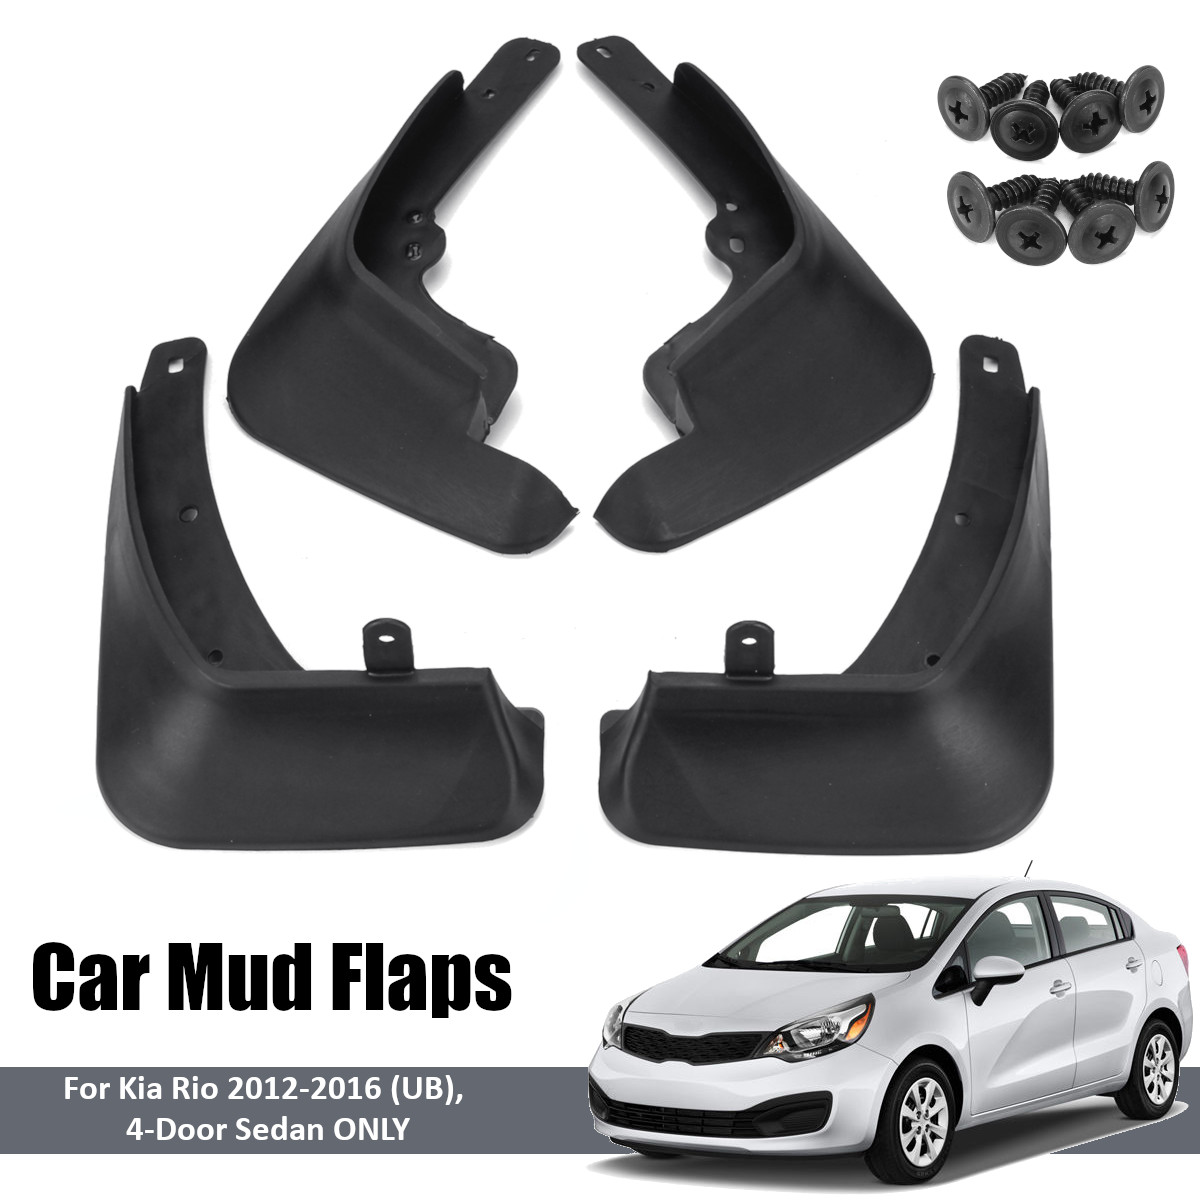 Car Mud Flaps For Kia <font><b>3</b></font> K2 UB 2012 2013 2014 2015 <font><b>2016</b></font> Fender Splash Guards Mudflaps Mudguards Mudflaps Accessories image